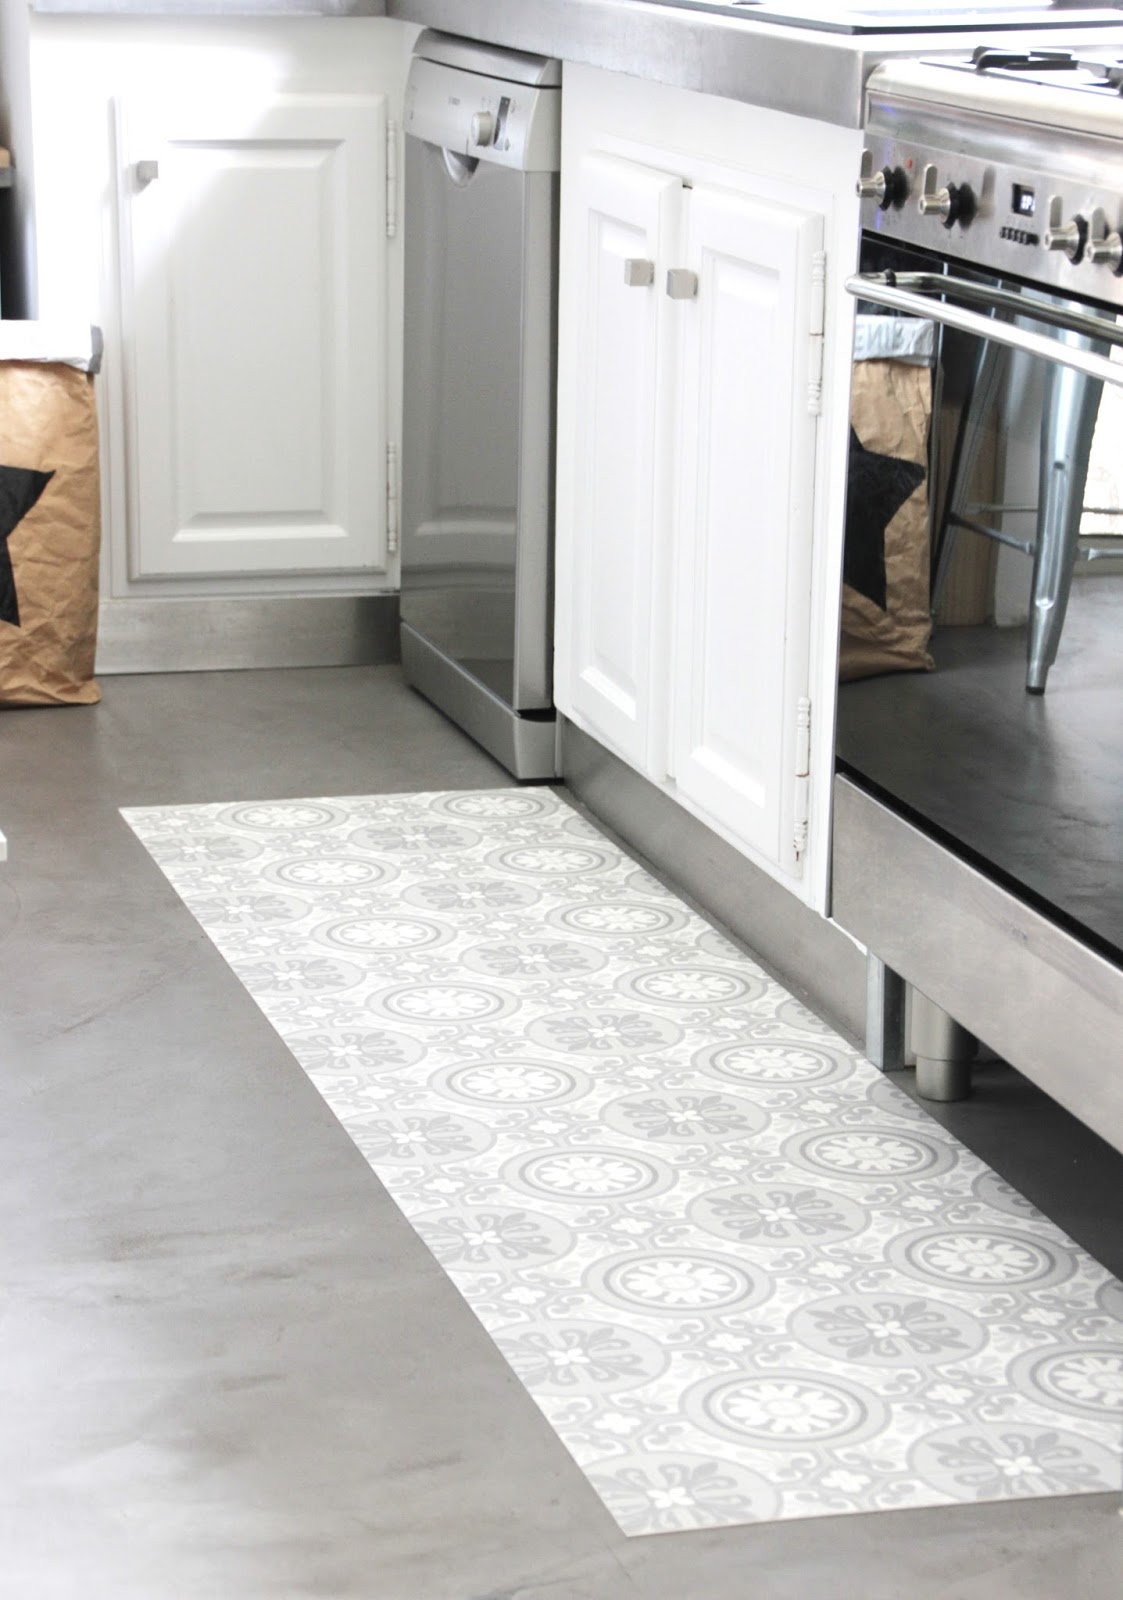 Regardsetmaisons mon tapis vinyle carreaux de ciment diy - Lino imitation carreaux de ciment ...